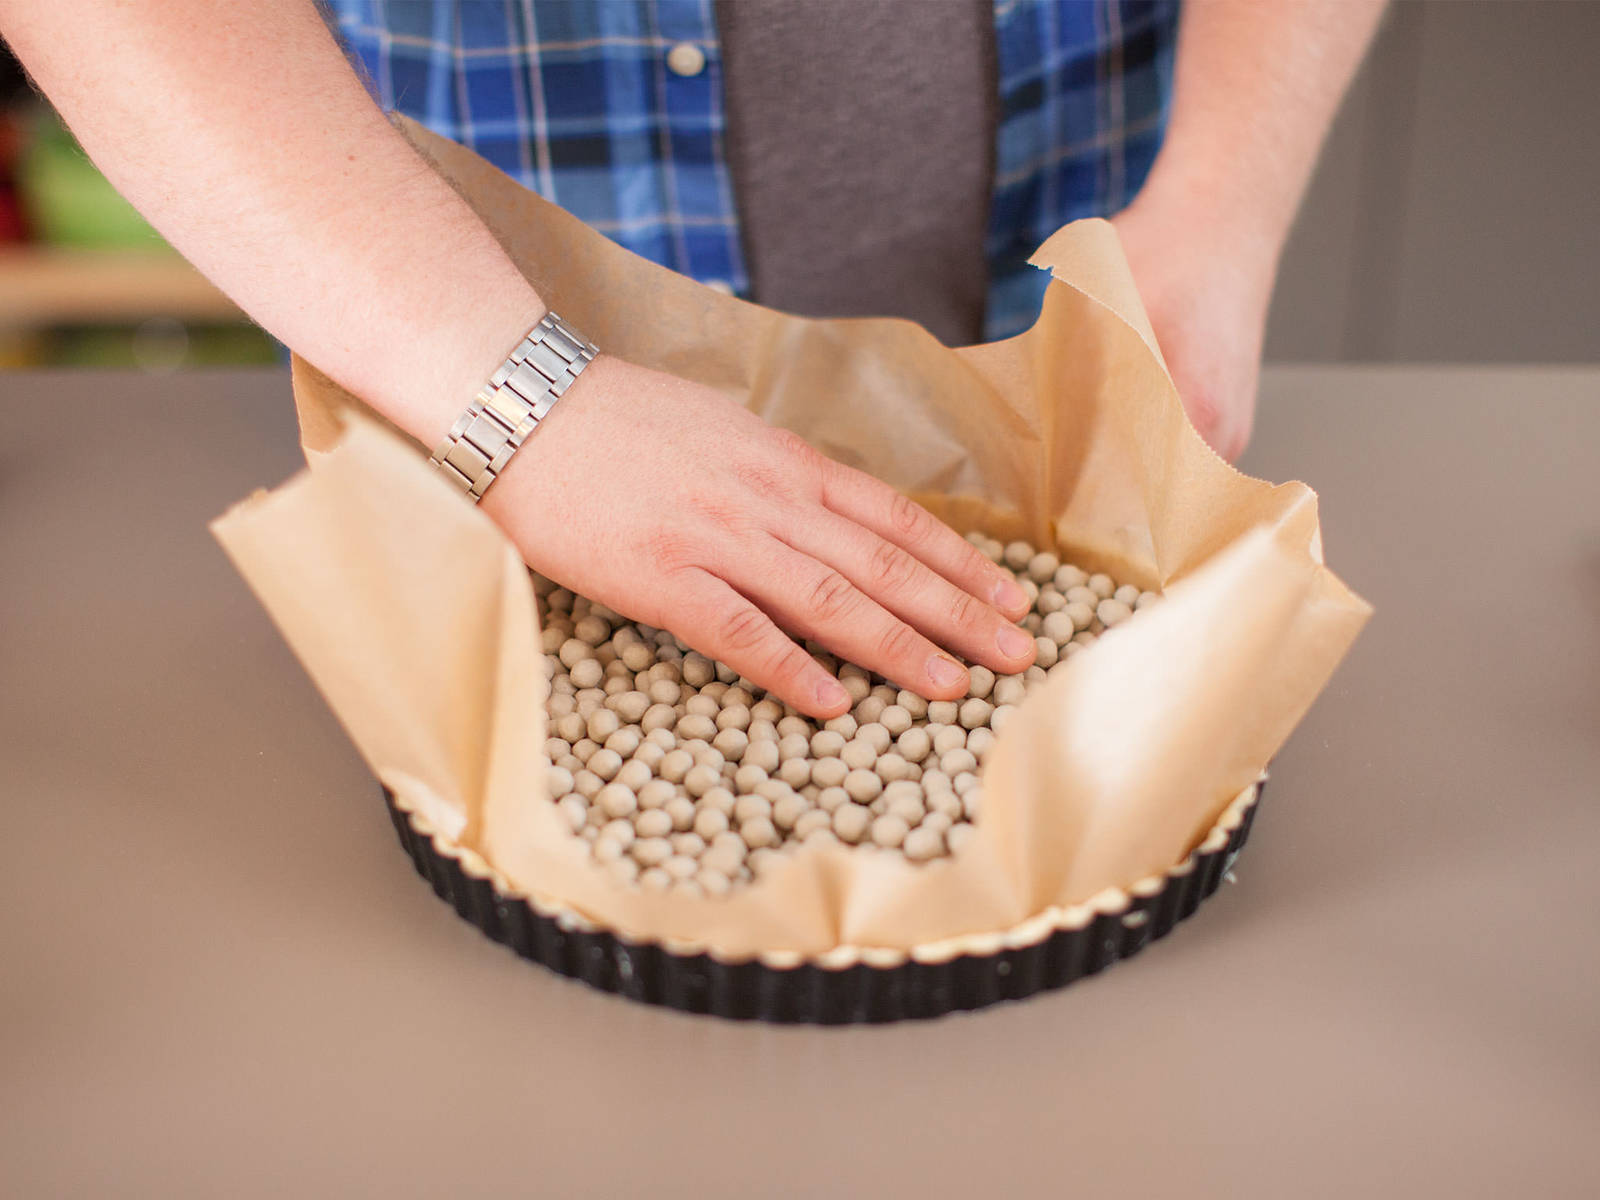 Carefully place parchment paper on the dough and fill with pie weights or dried beans. Blind bake in the preheated oven at 180°C/350°F for approx. 15 – 20 min. until edges are golden.